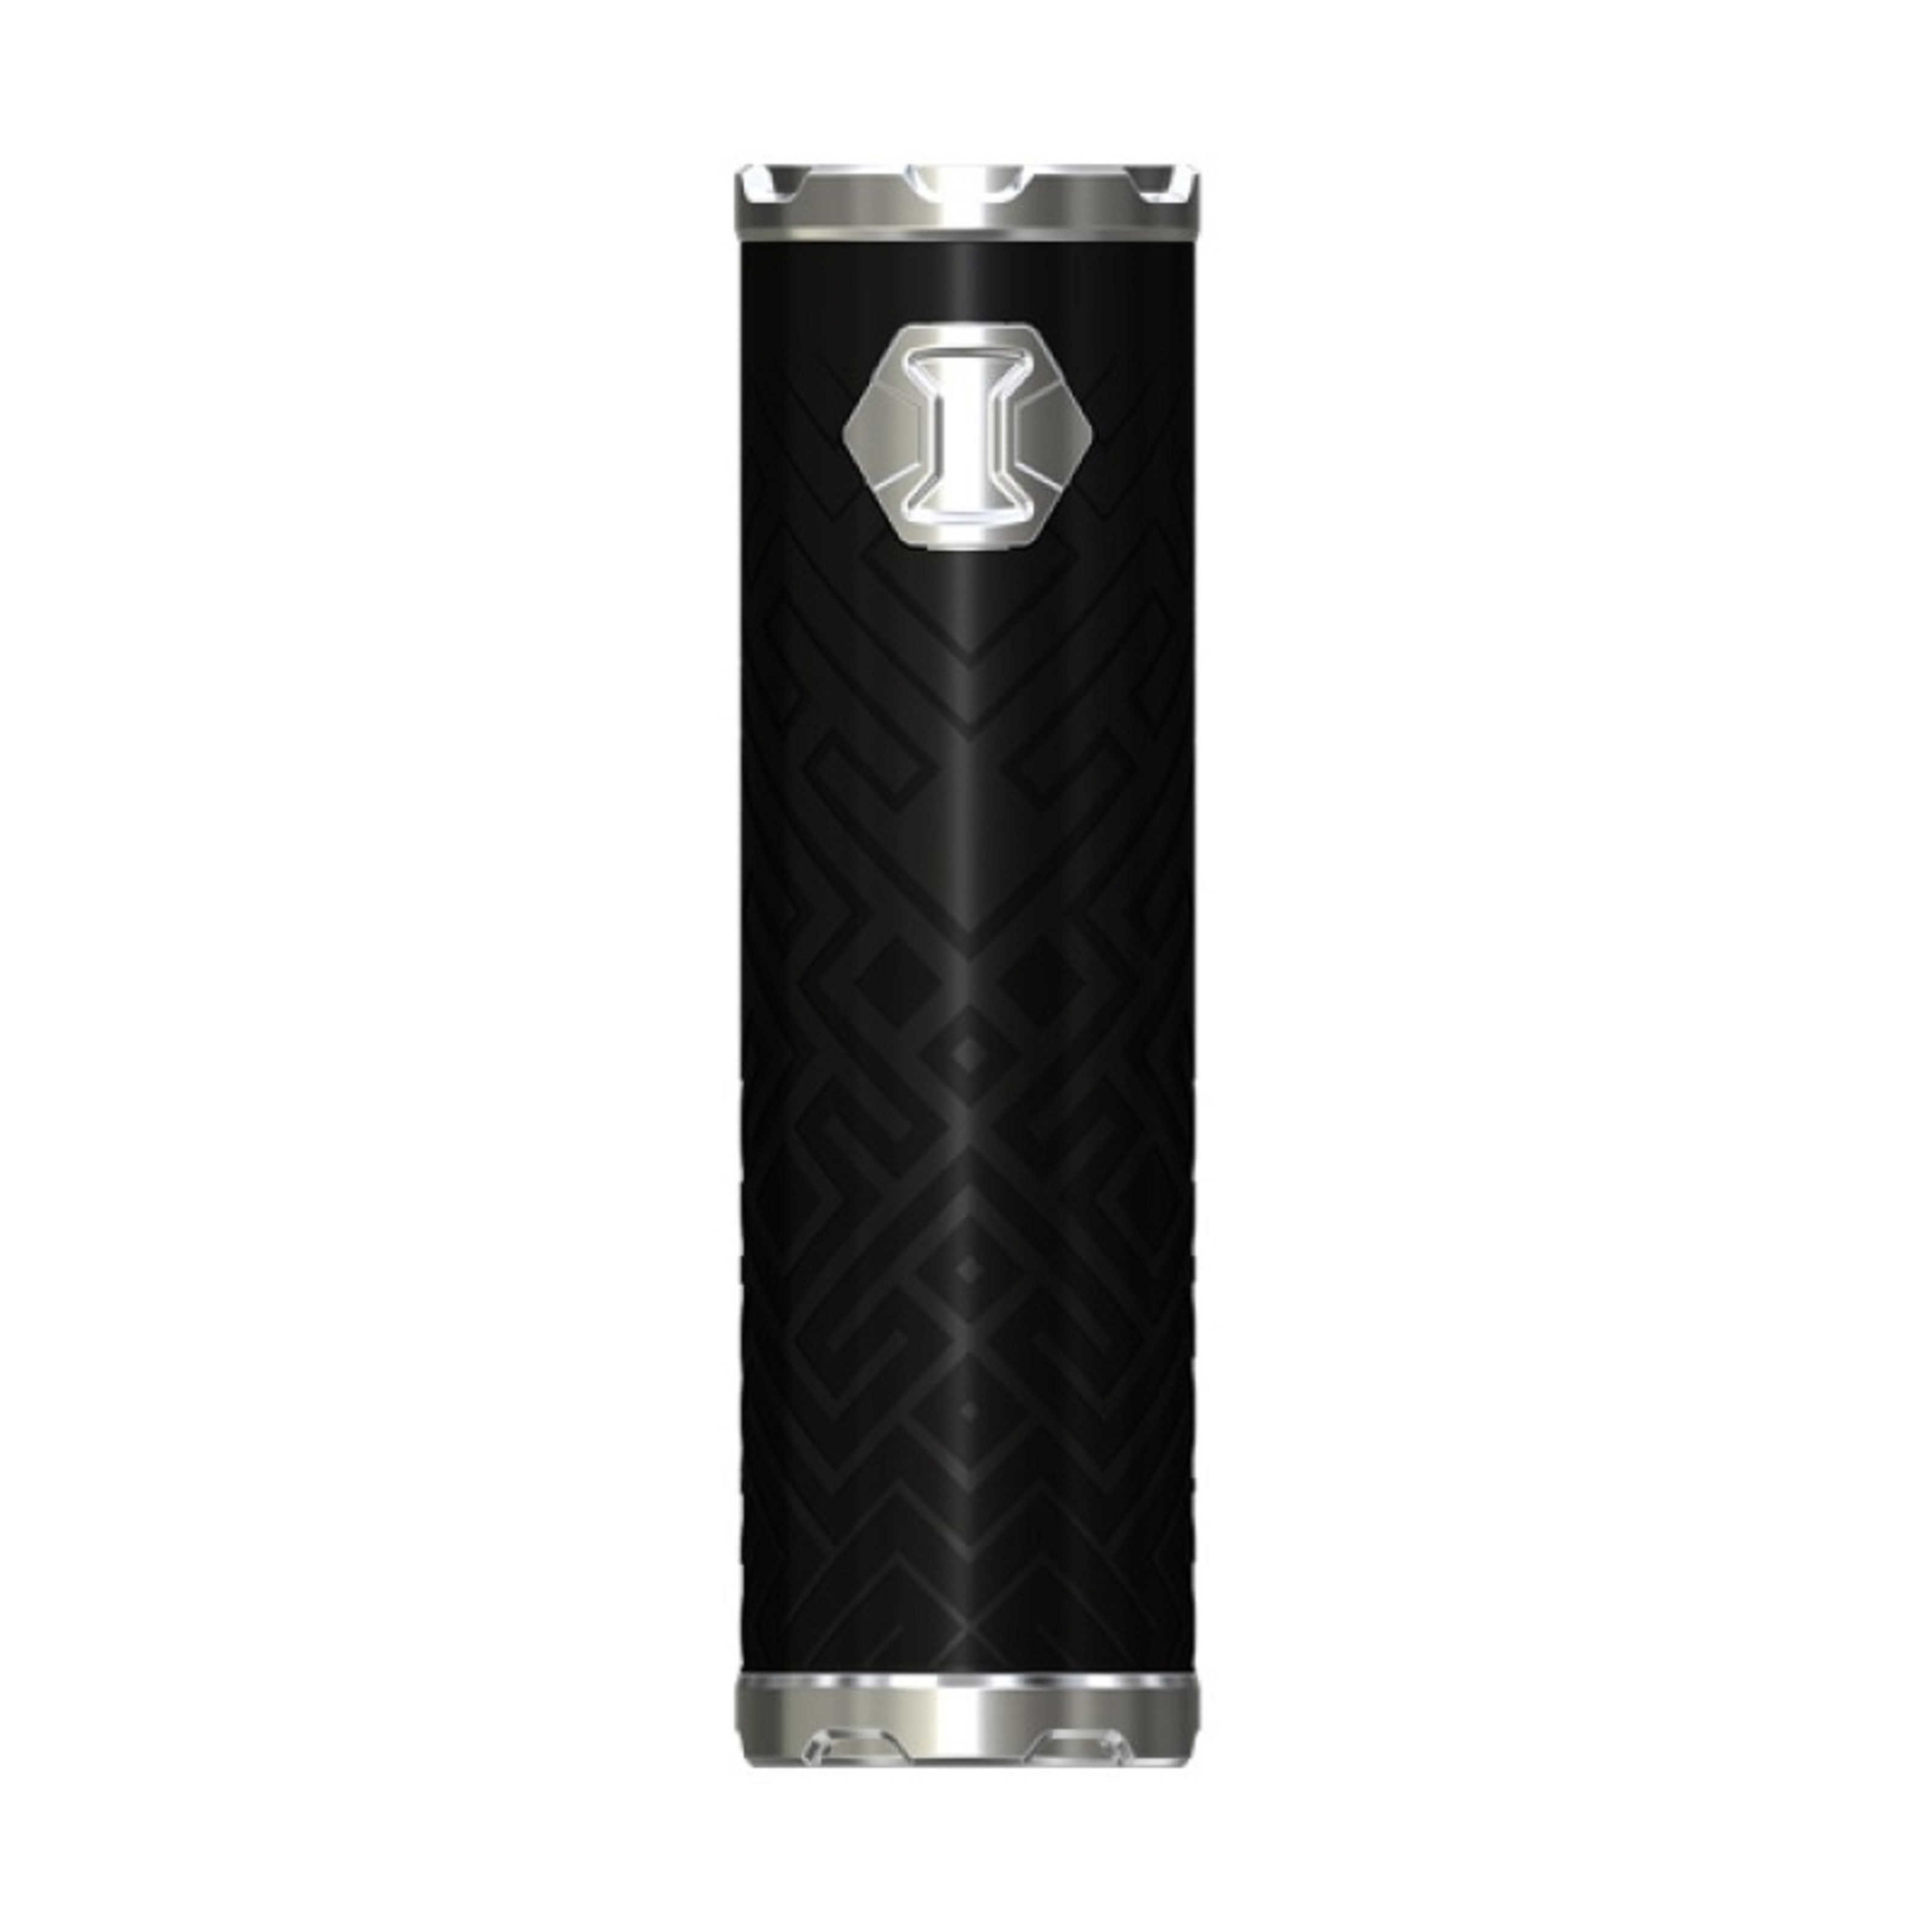 Eleaf IJust 3 3000mah Battery MAIN